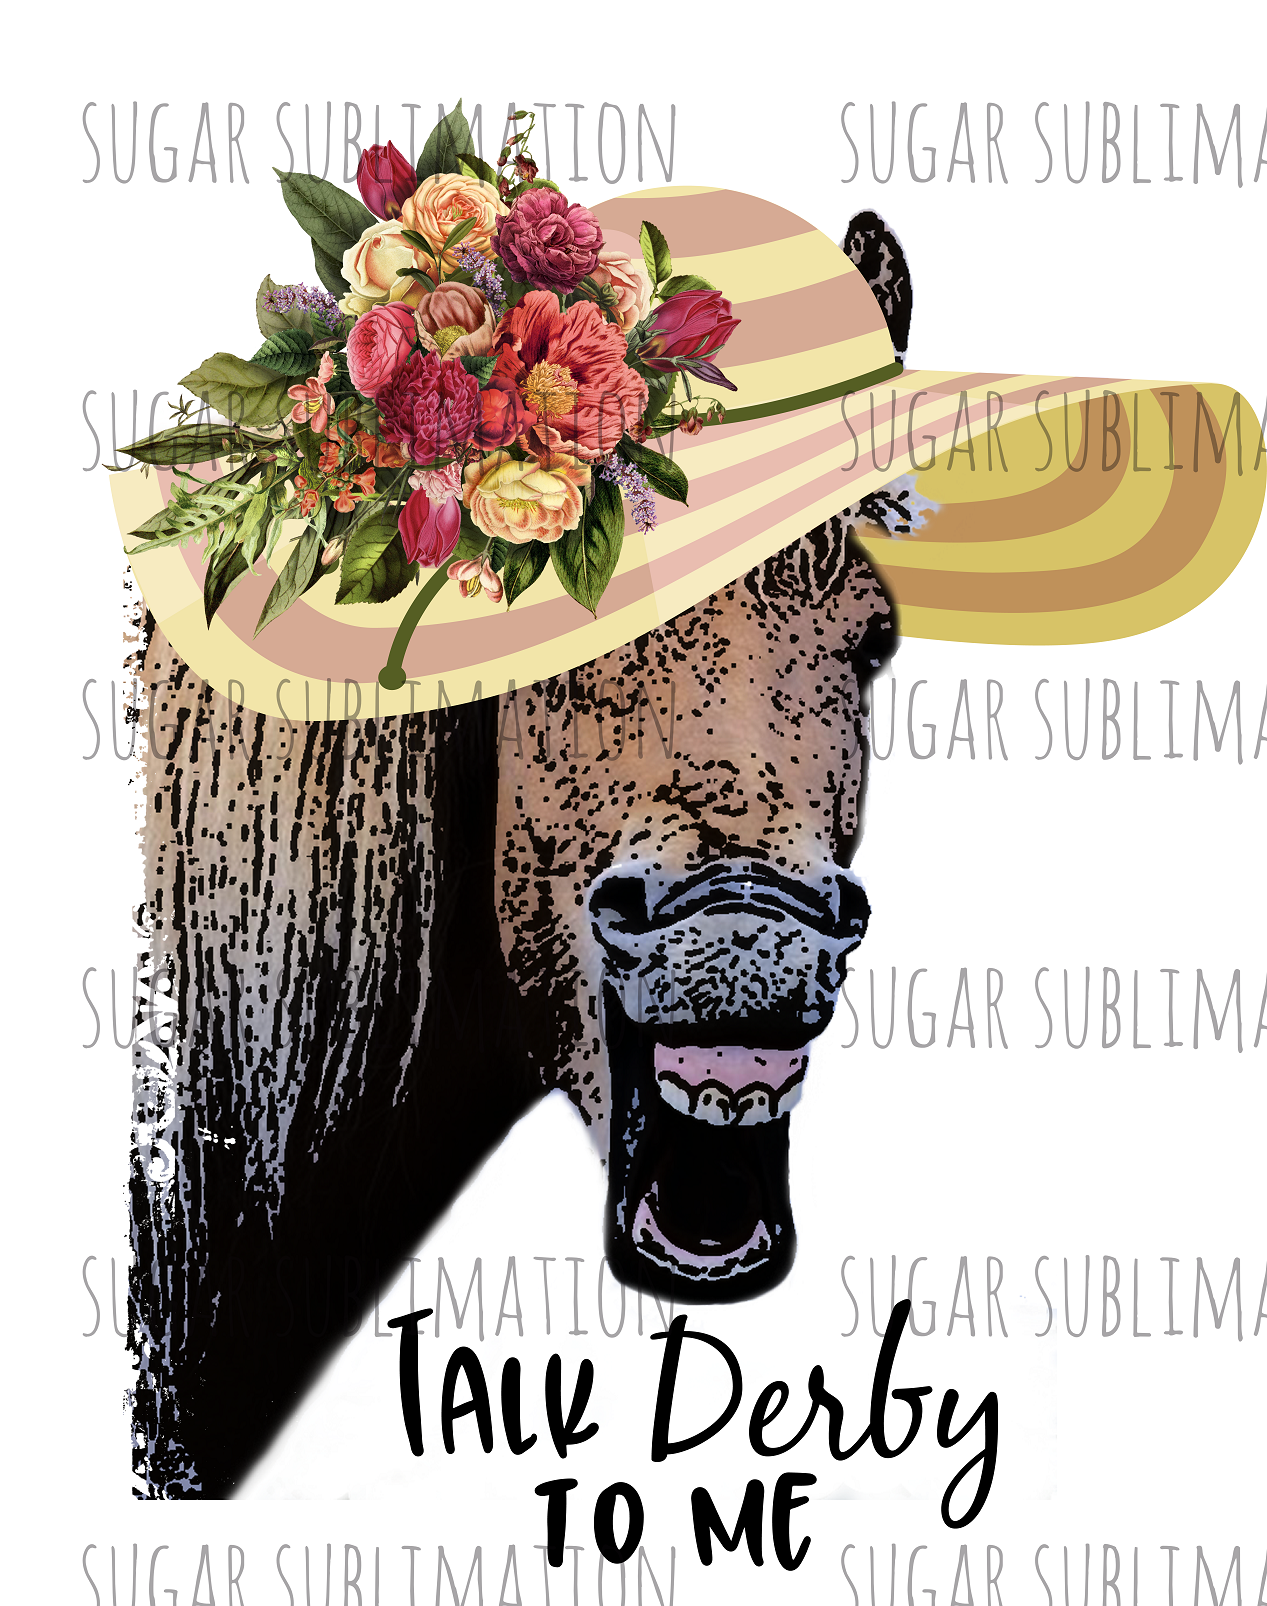 Talk Derby to Me - horse - sublimation transfer